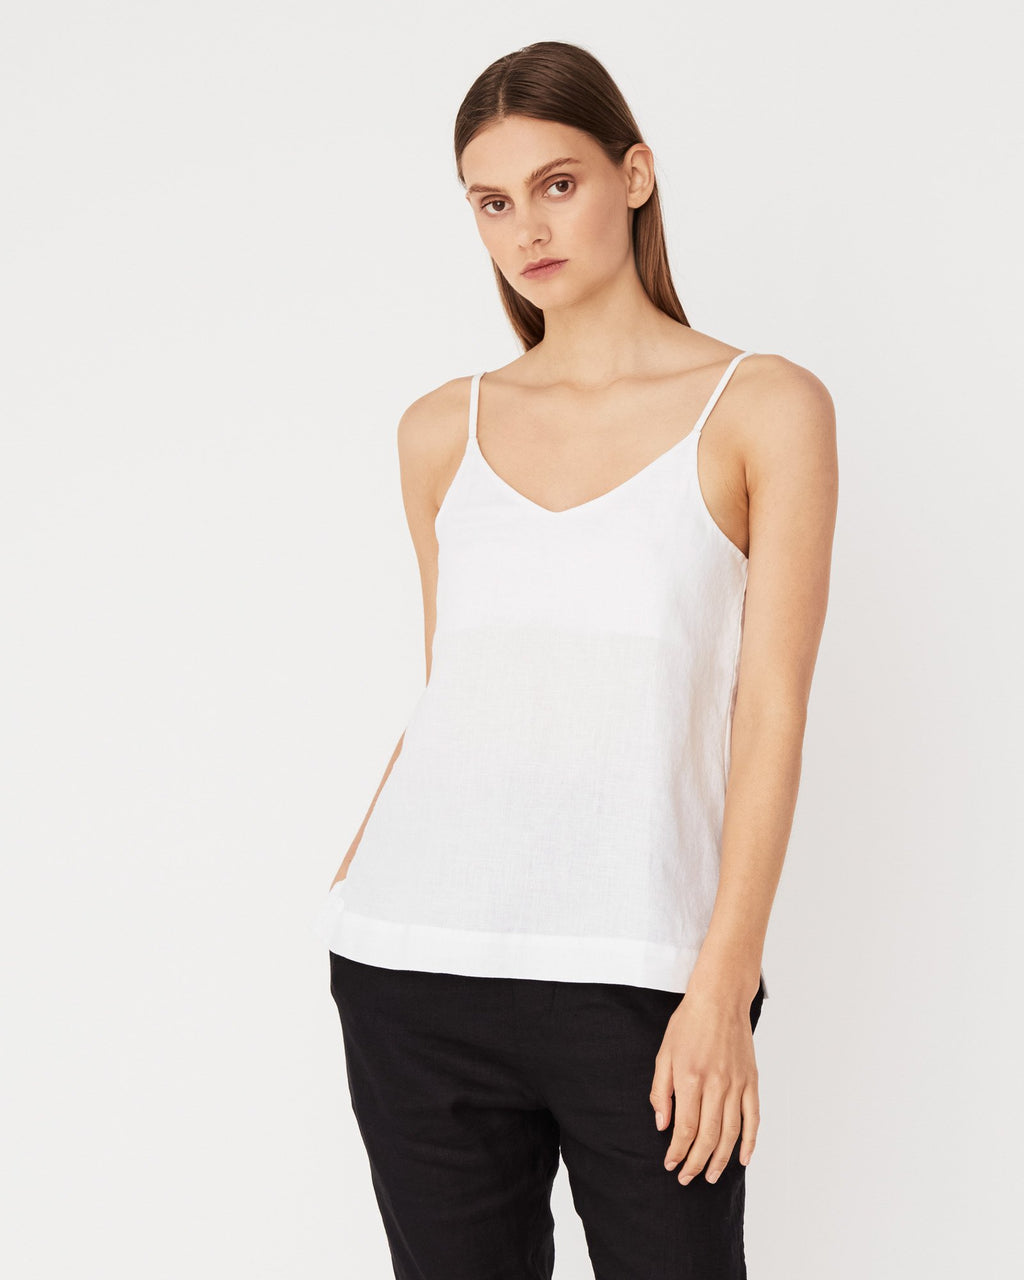 Assembly Label Linen Slip Top - White